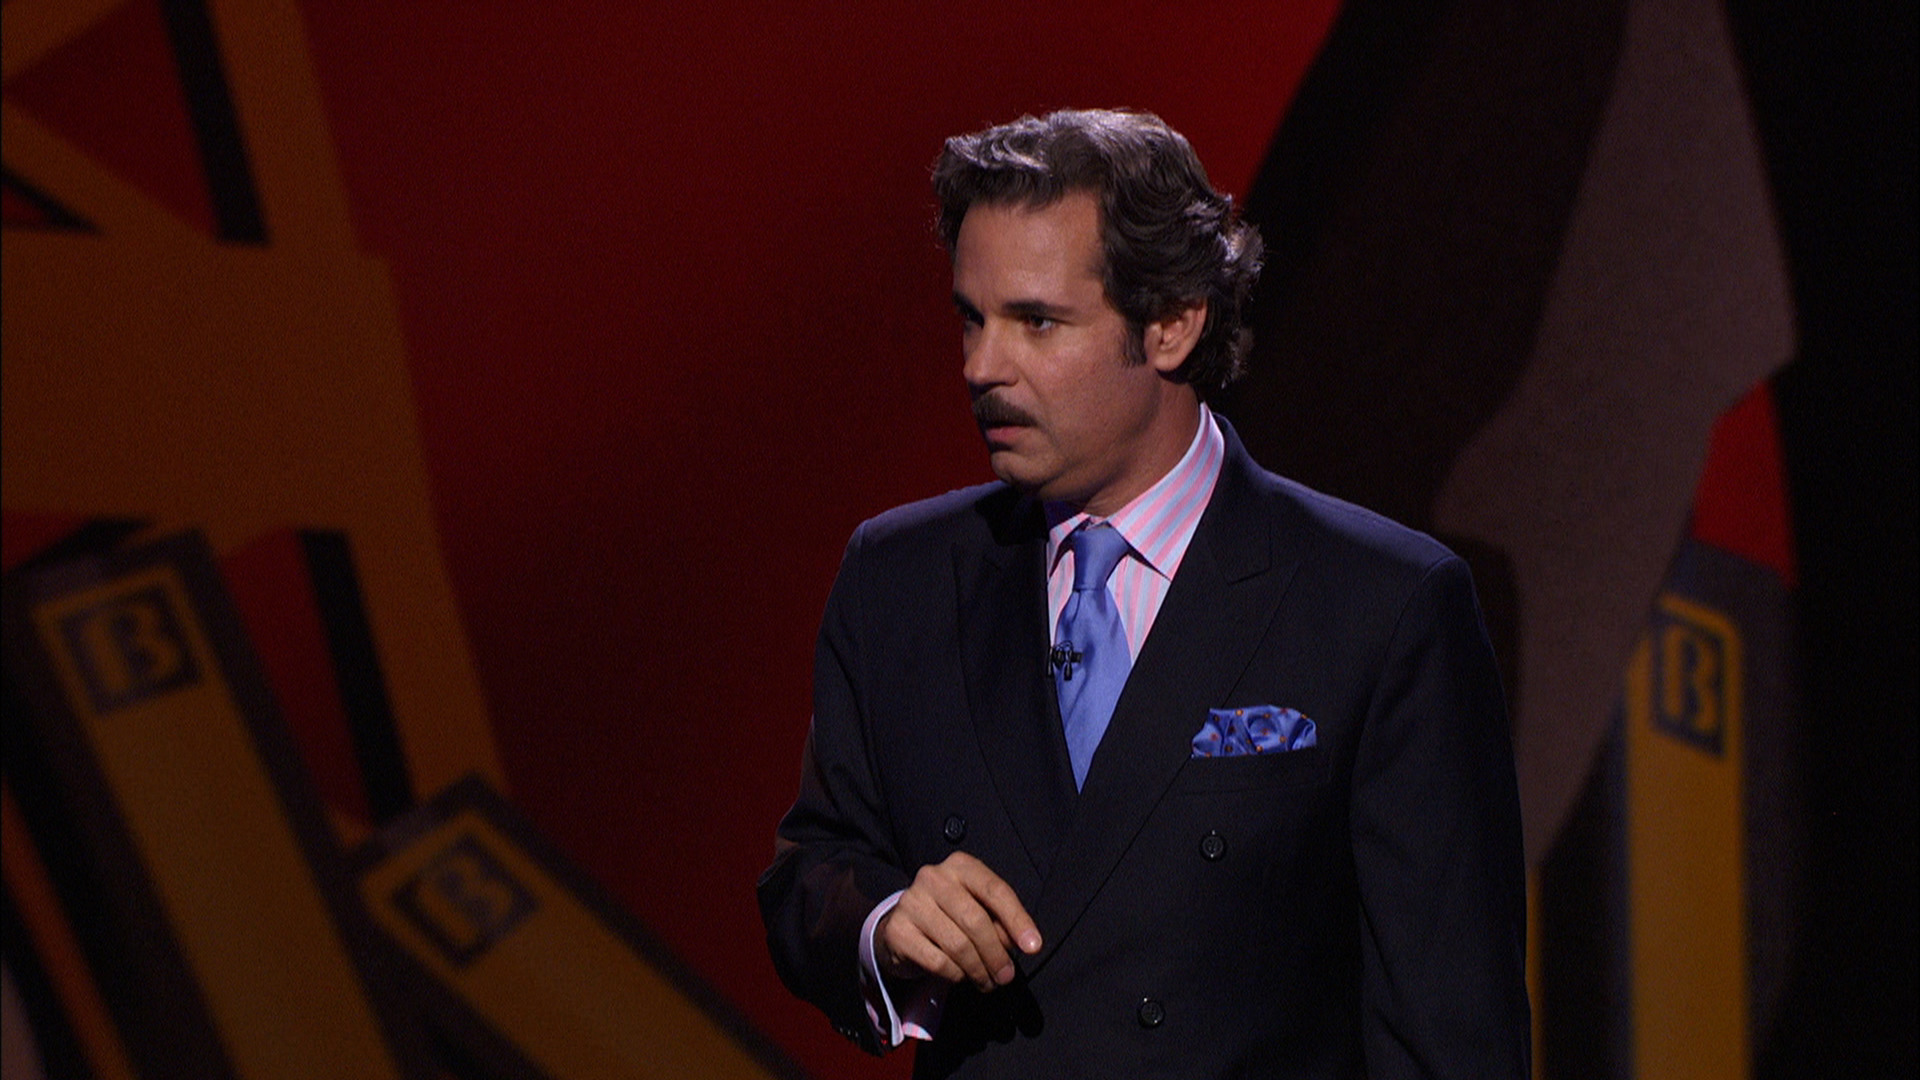 Paul F. Tompkins - Getting Yelled At